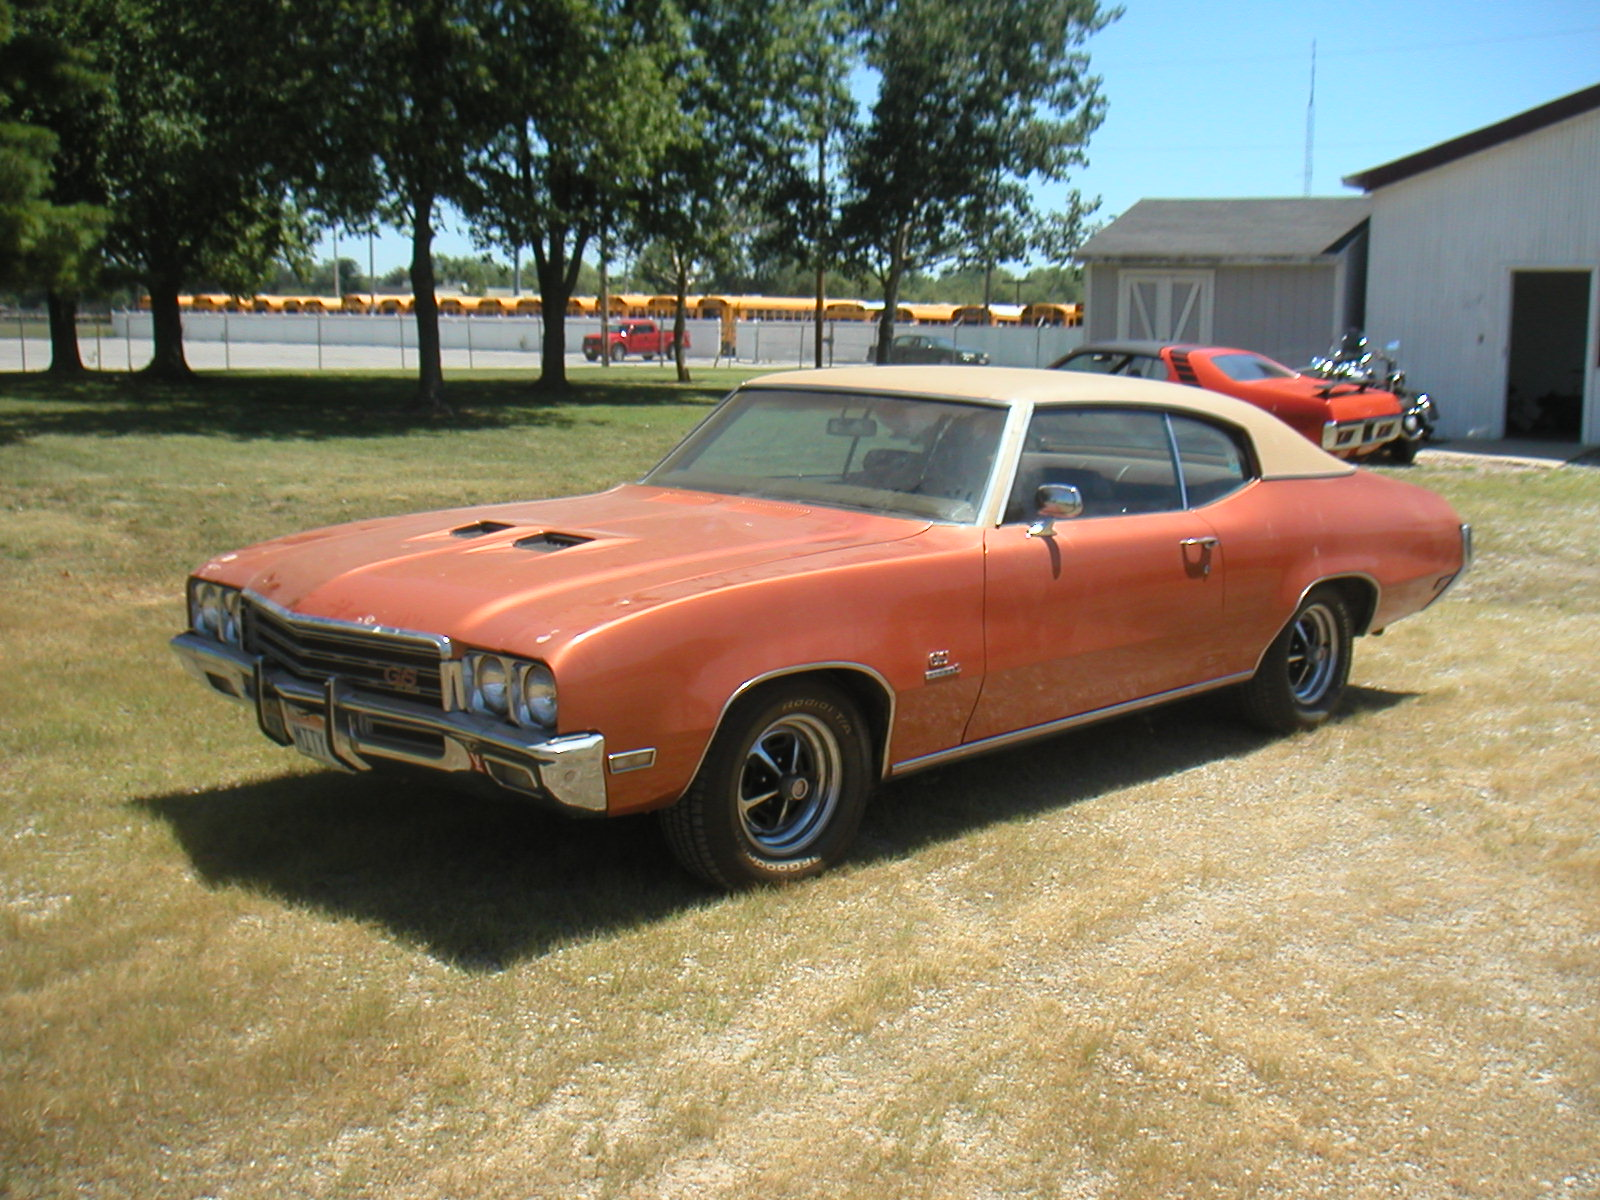 1971 Buick GS 455 Stage 1